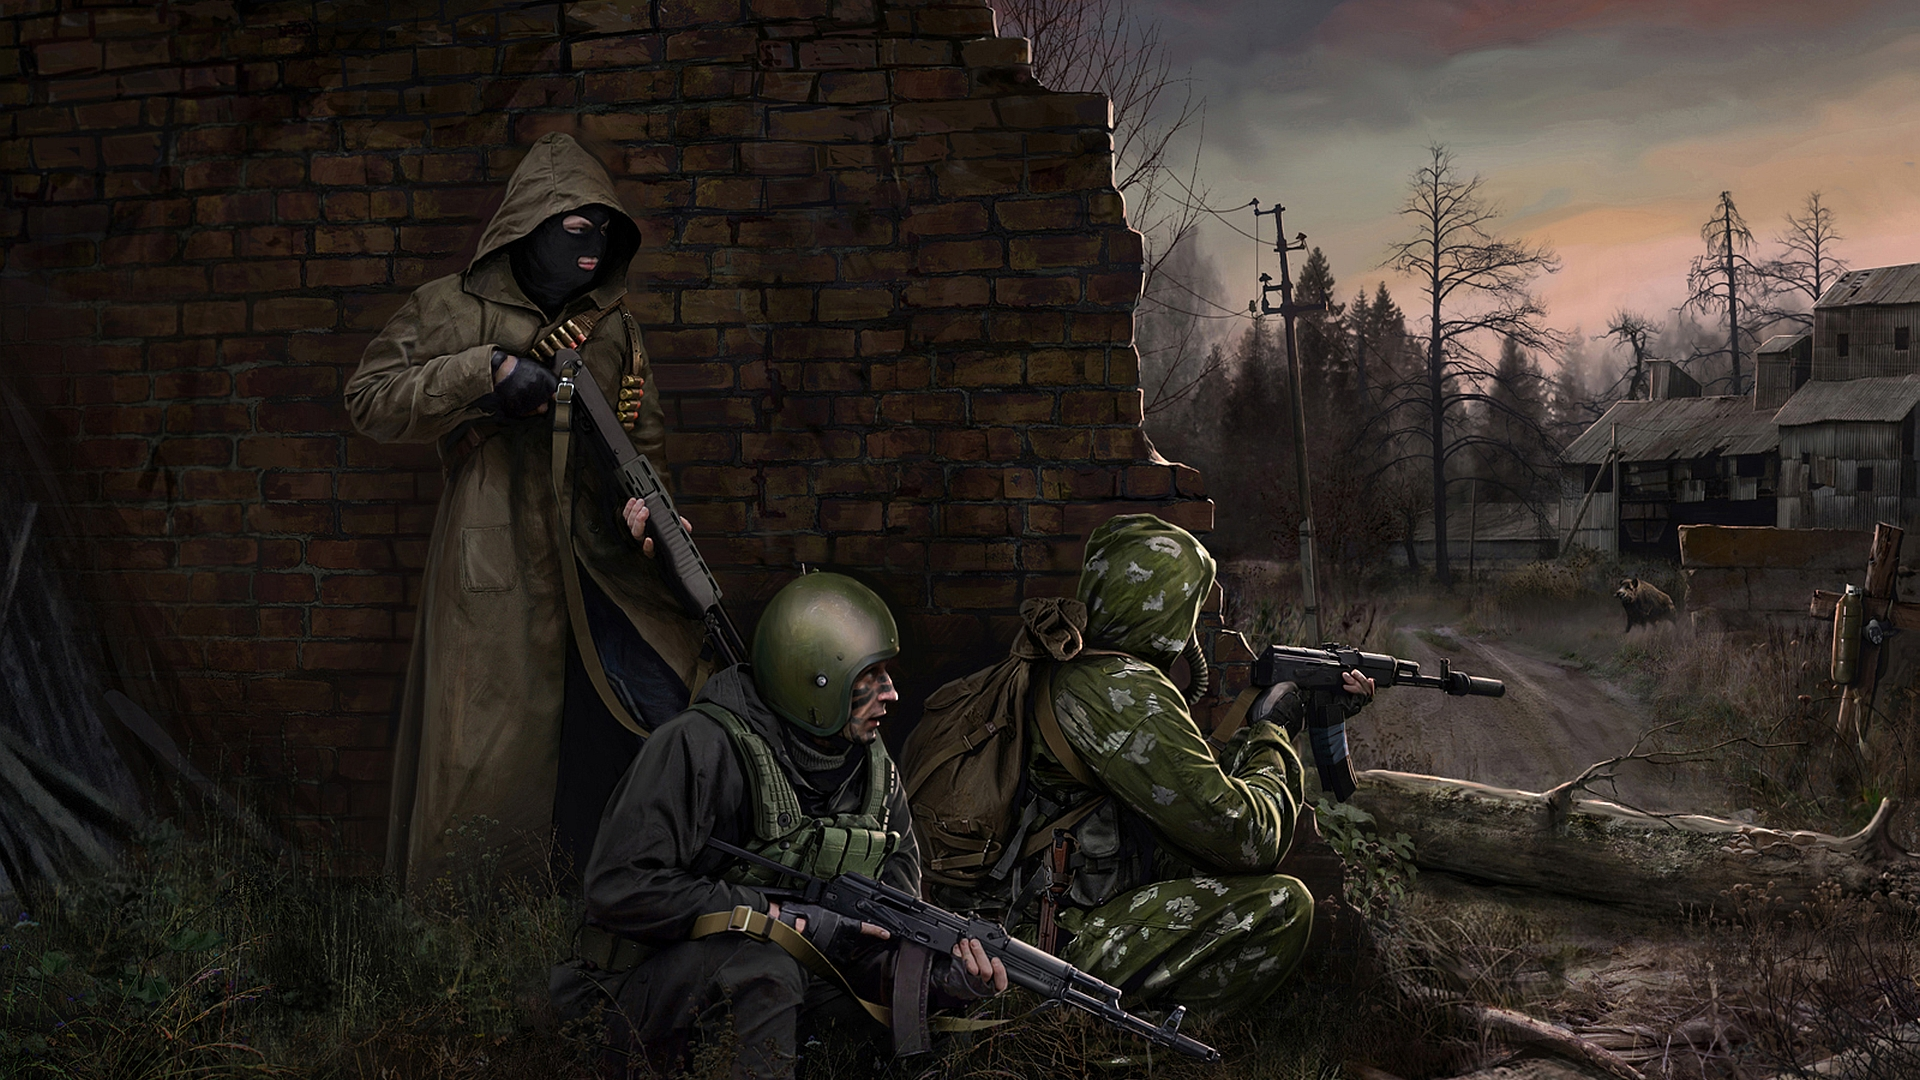 S.T.A.L.K.E.R. Full HD Wallpaper and Background Image ...